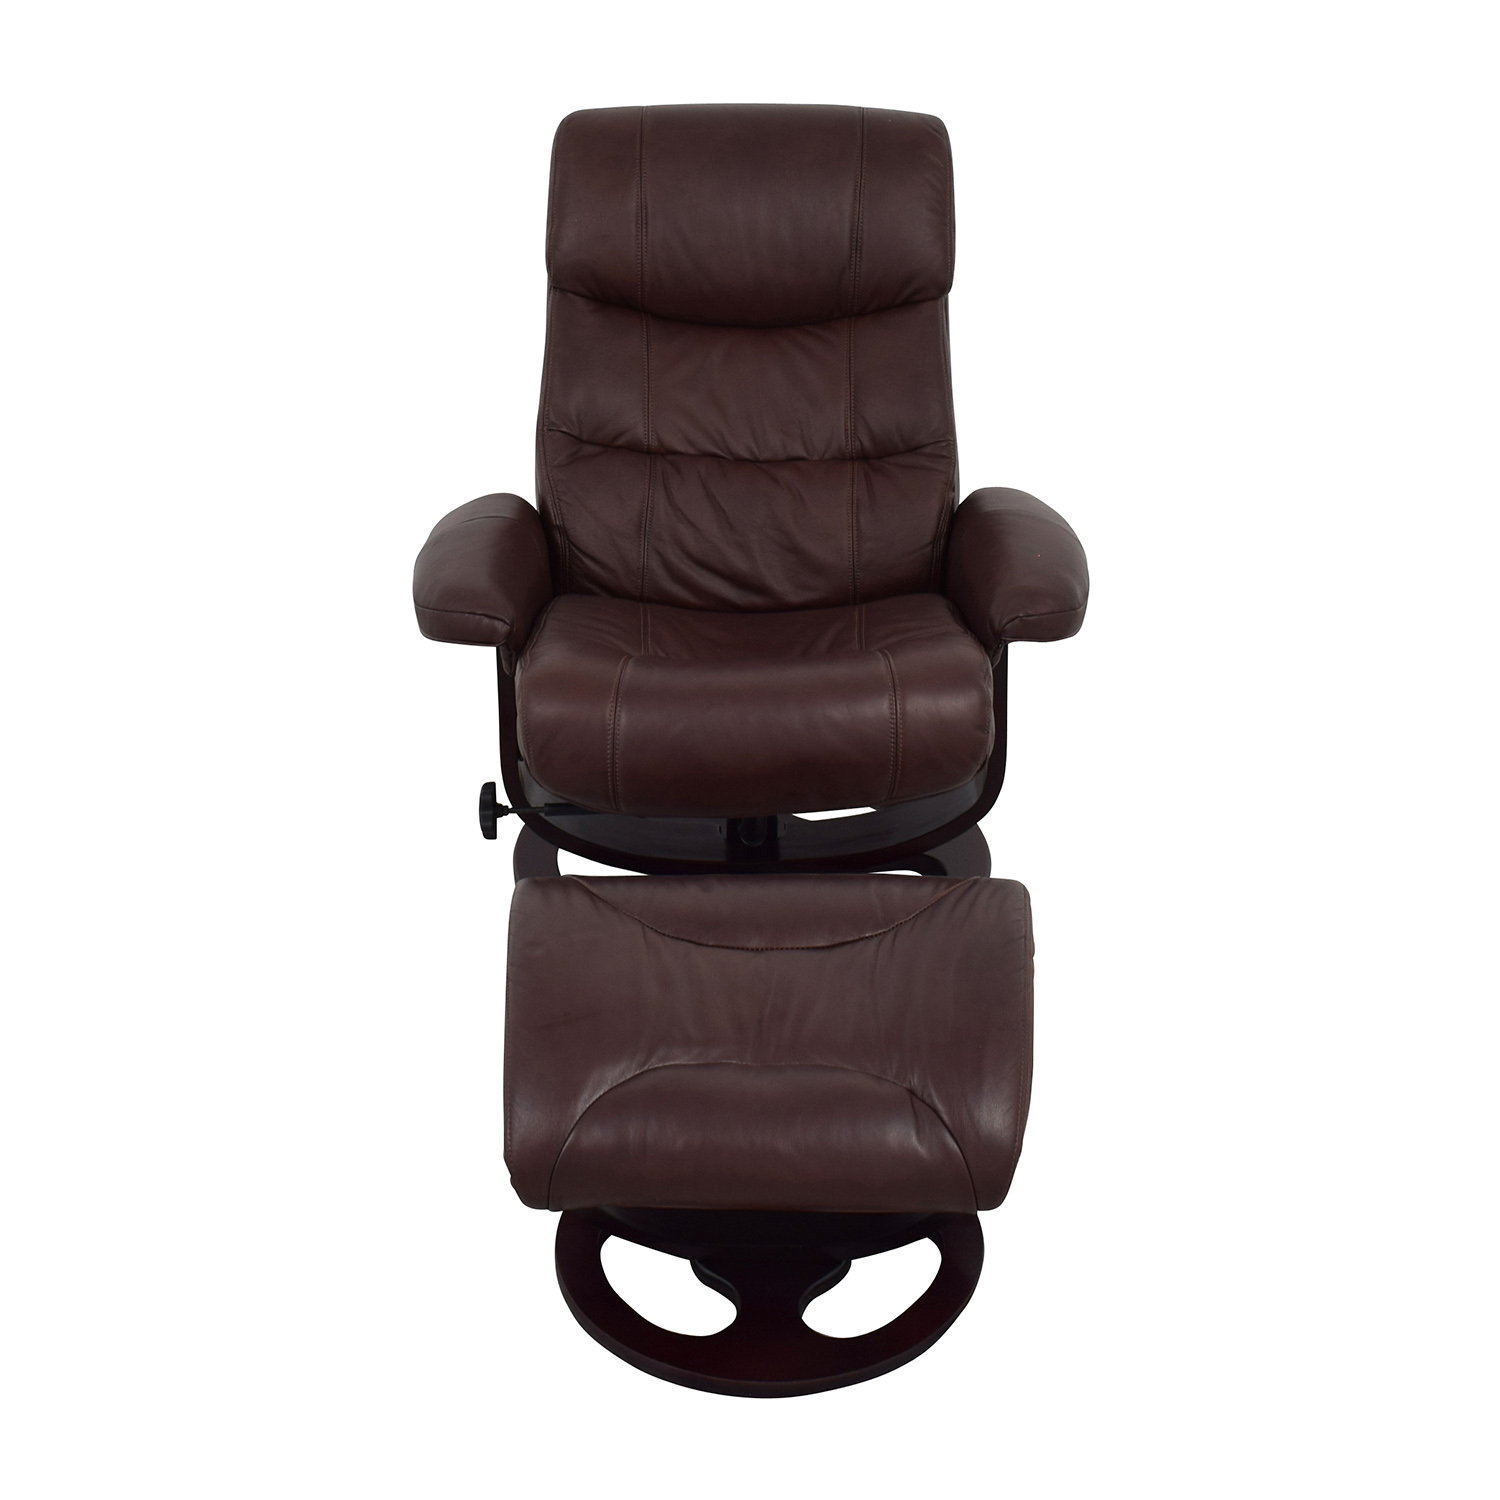 59 Off Macy S Macy S Aby Brown Leather Recliner Chair